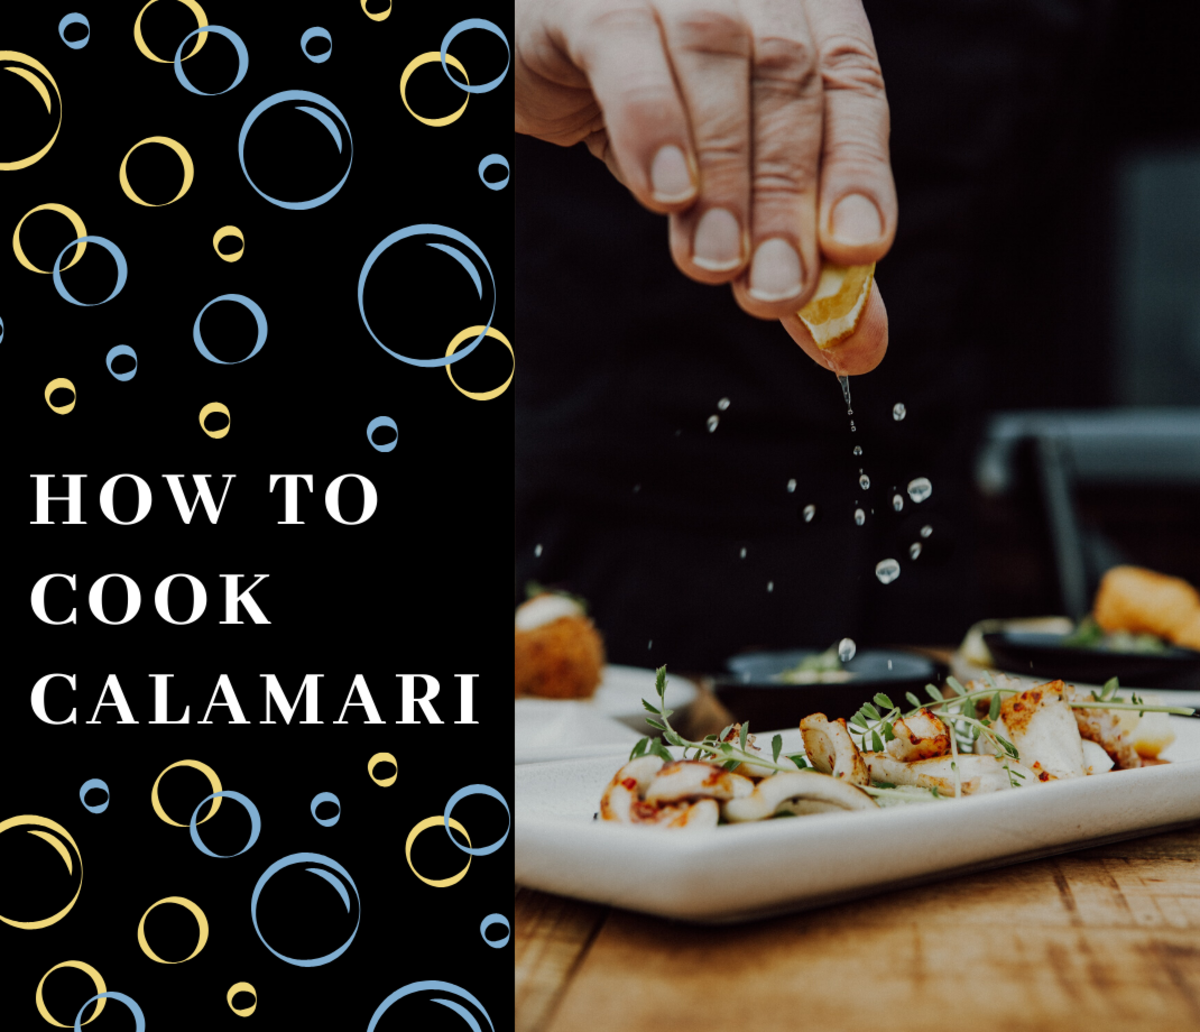 Calamari recipes are more than calamari rings deep-fried in batter. Read on to learn some great recipes.